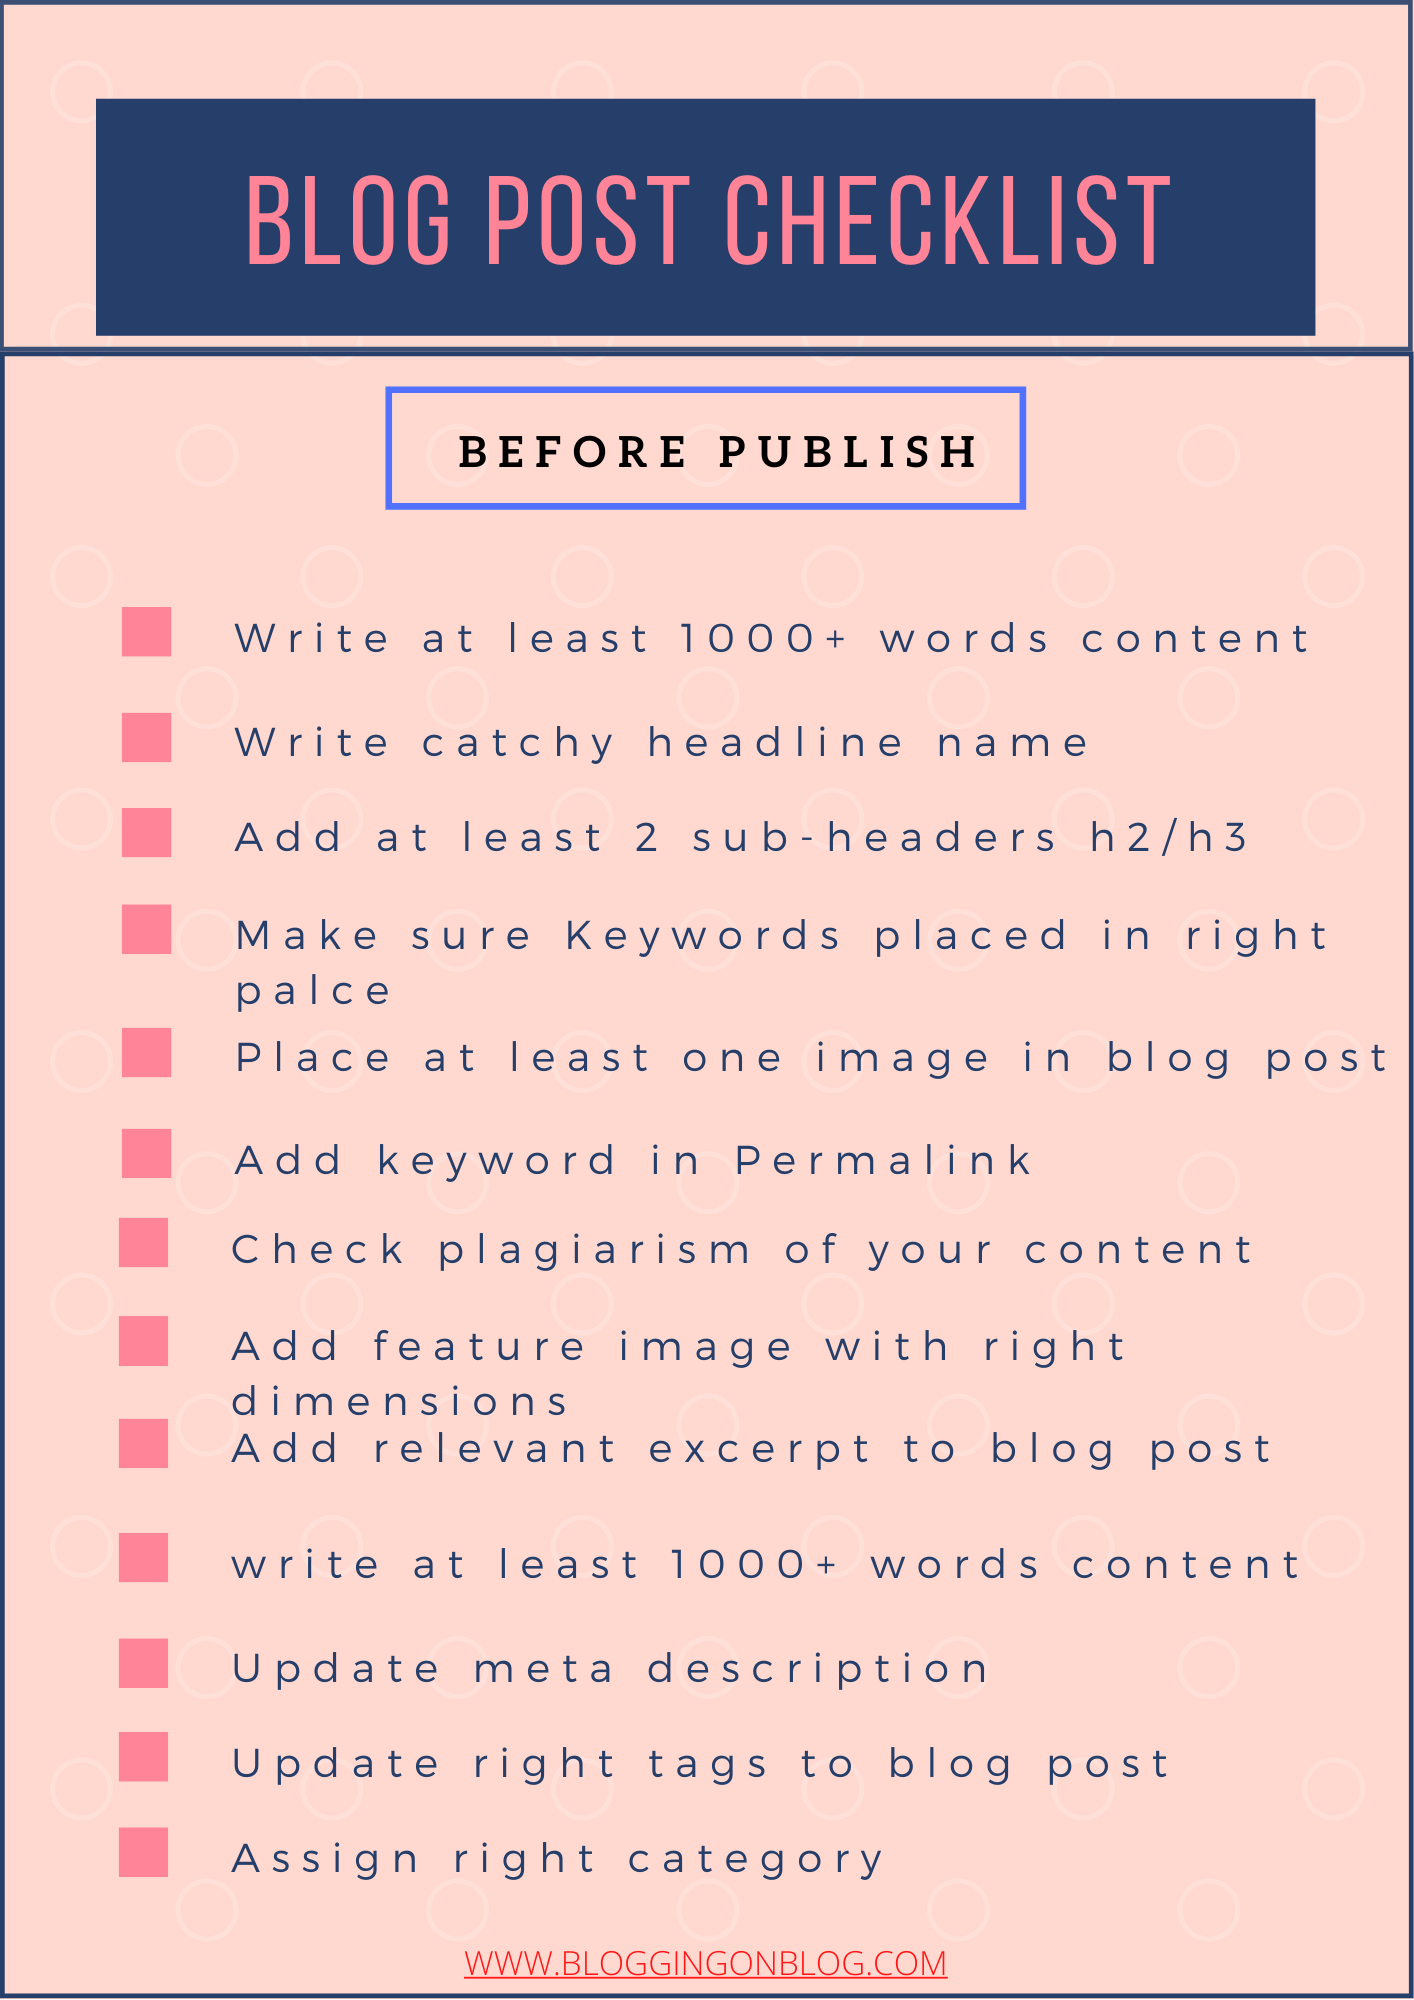 Blog post checklist to apply before publish